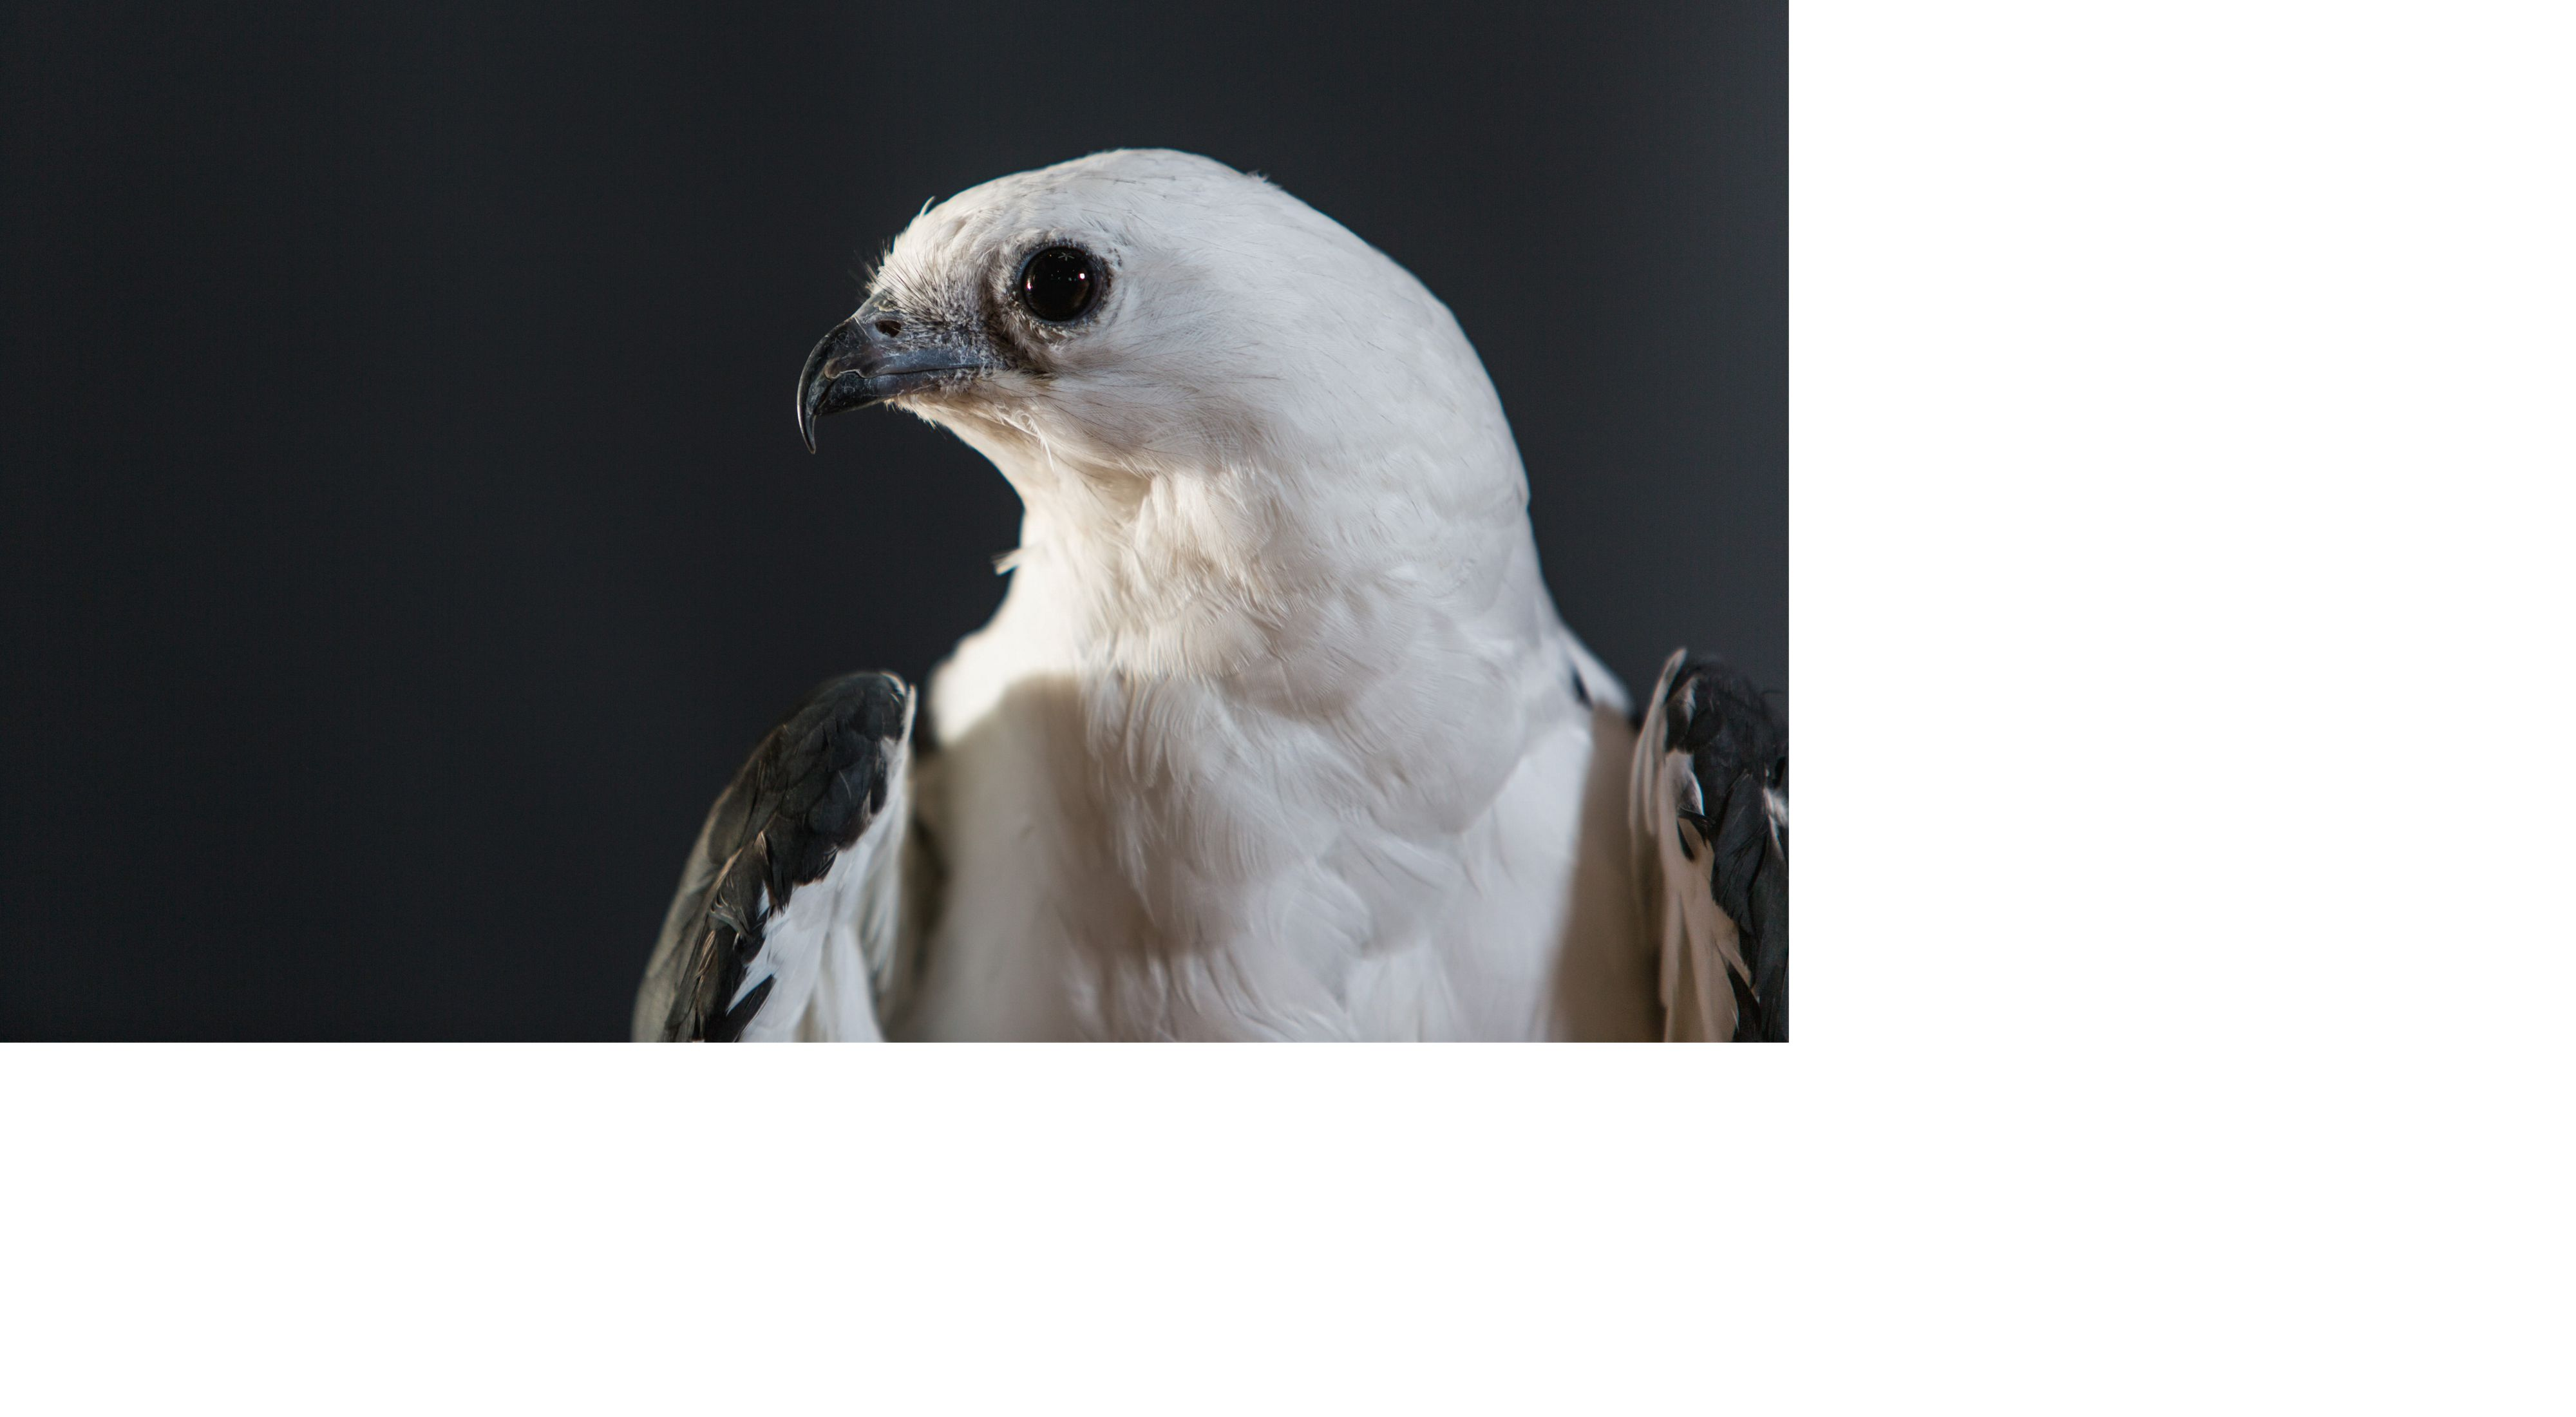 closeup of a white bird's head turned to the side